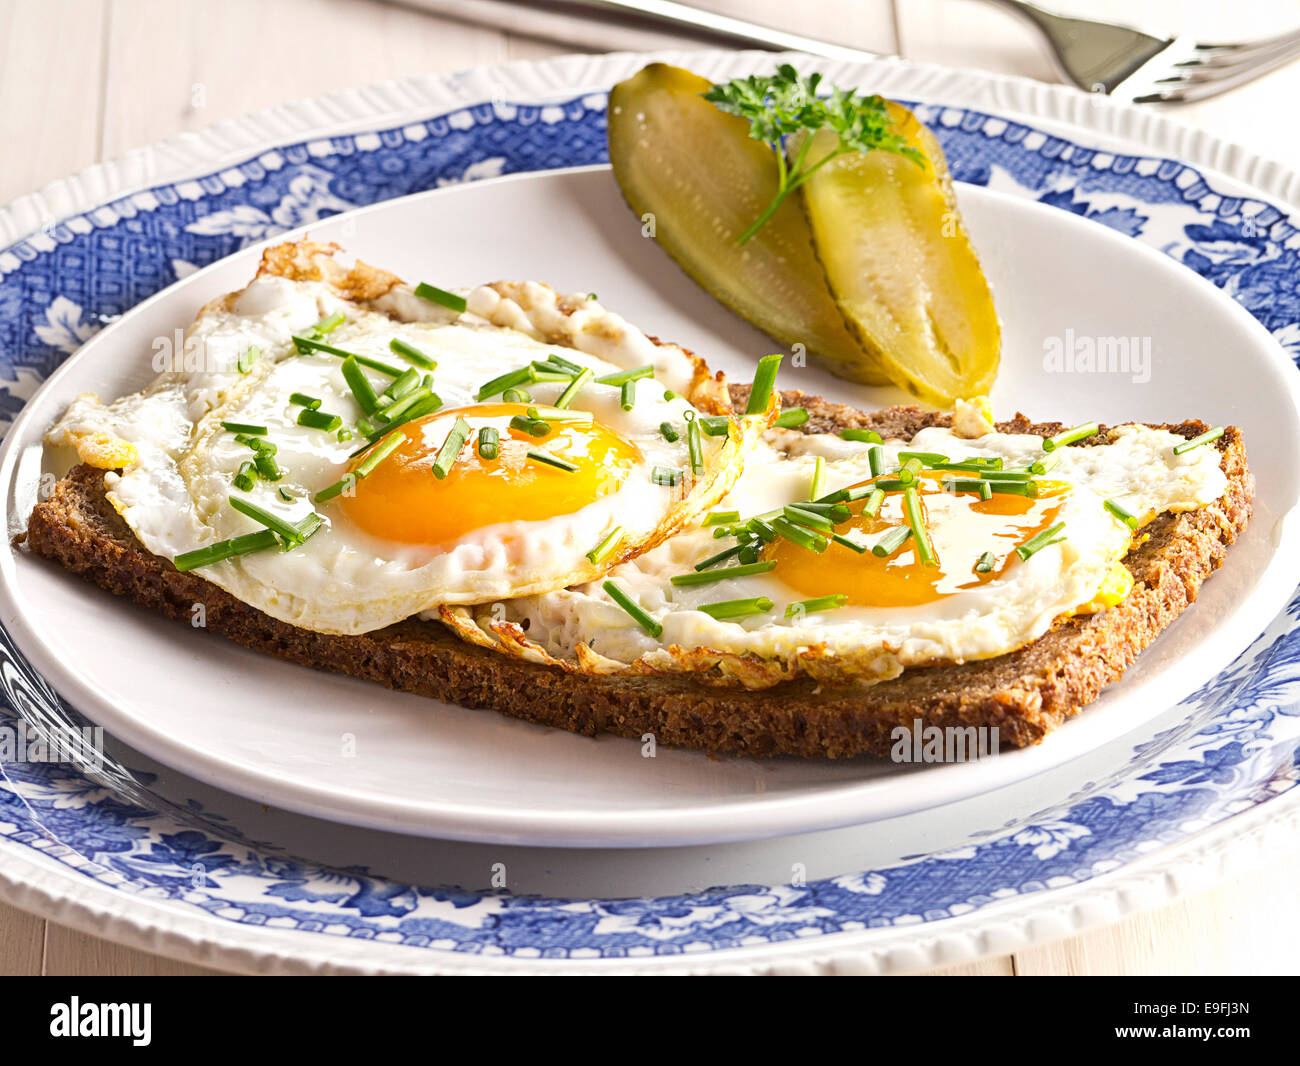 Fried egg on a slice of bread Stock Photo